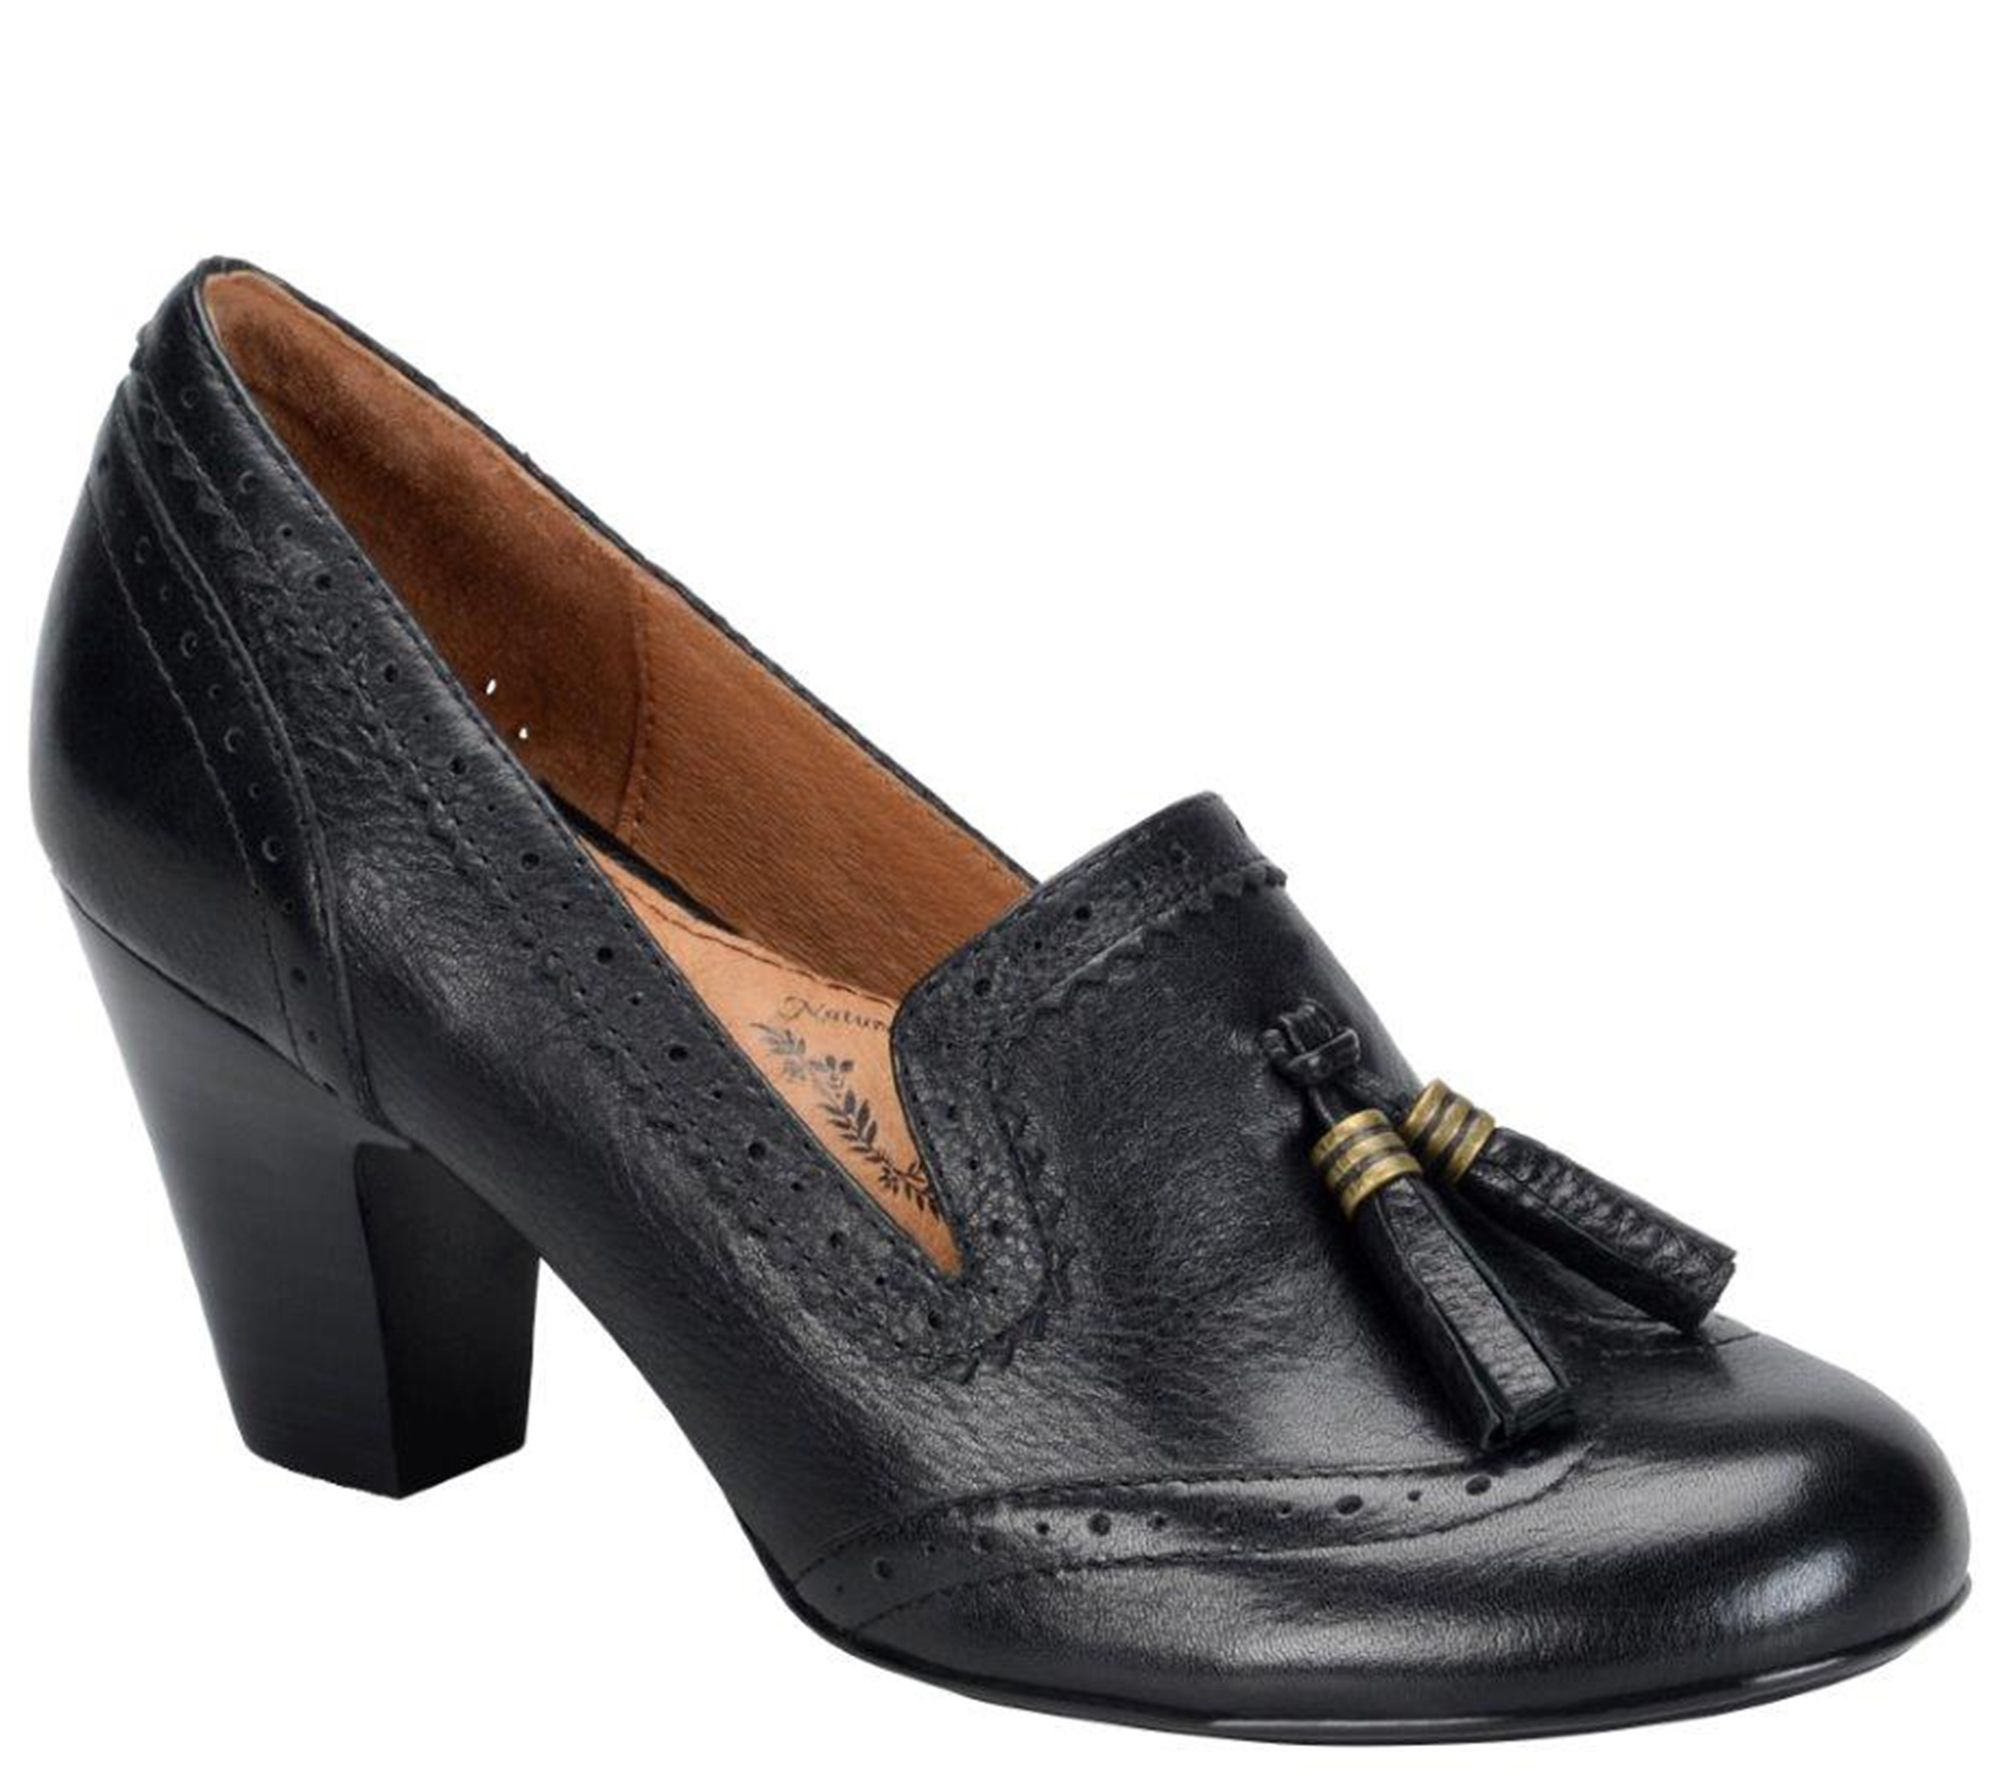 The Walking Company features the finest women's comfort shoe brands for all of your fashion, casual, outdoor, fitness and comfort needs. We search the world to find you the finest comfort shoes .